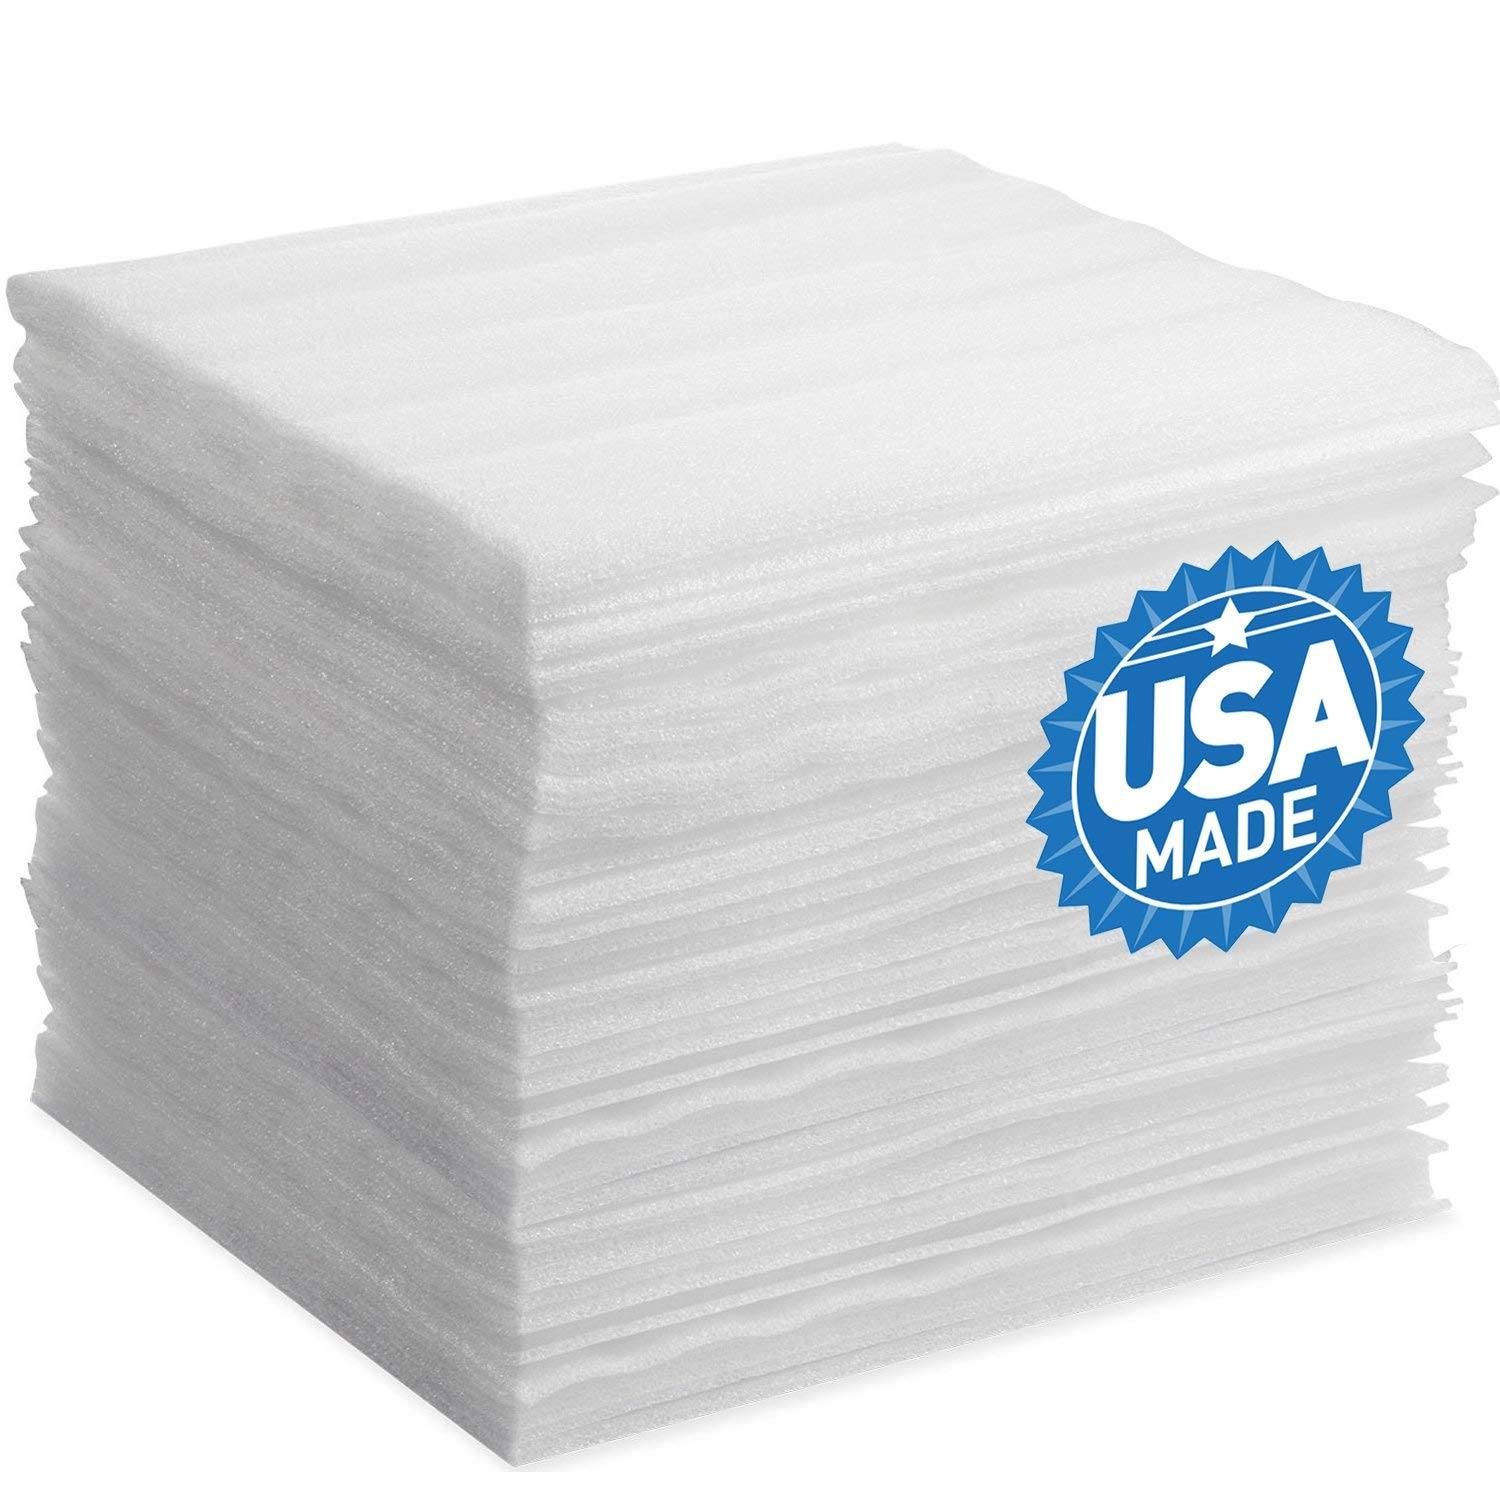 """Foam Wraps, DAT 12"""" x 12"""" 50-Pack Foam Sheets Cushioning for Moving Storage Packing and Shipping Supplies, 1/8"""" Thick"""